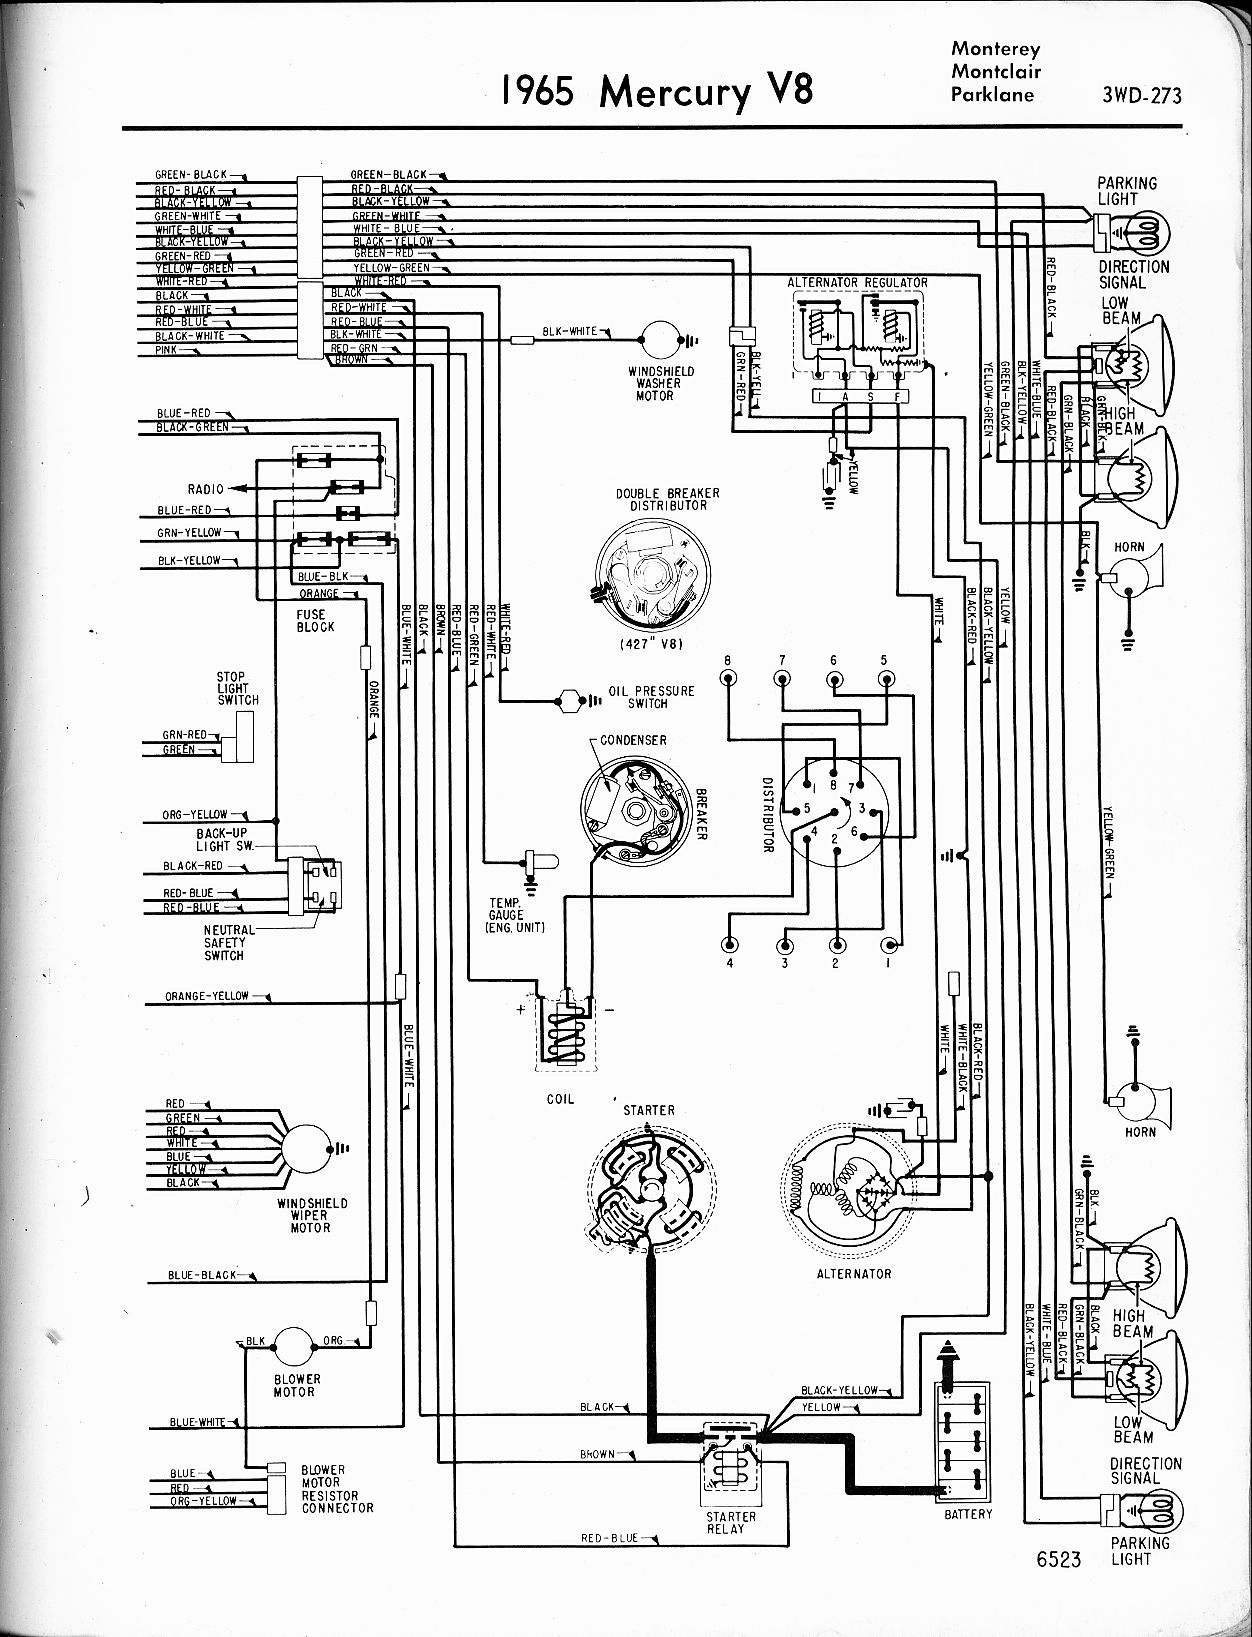 ... 68 mercury cougar: wire diagram..the coil,water temp ...